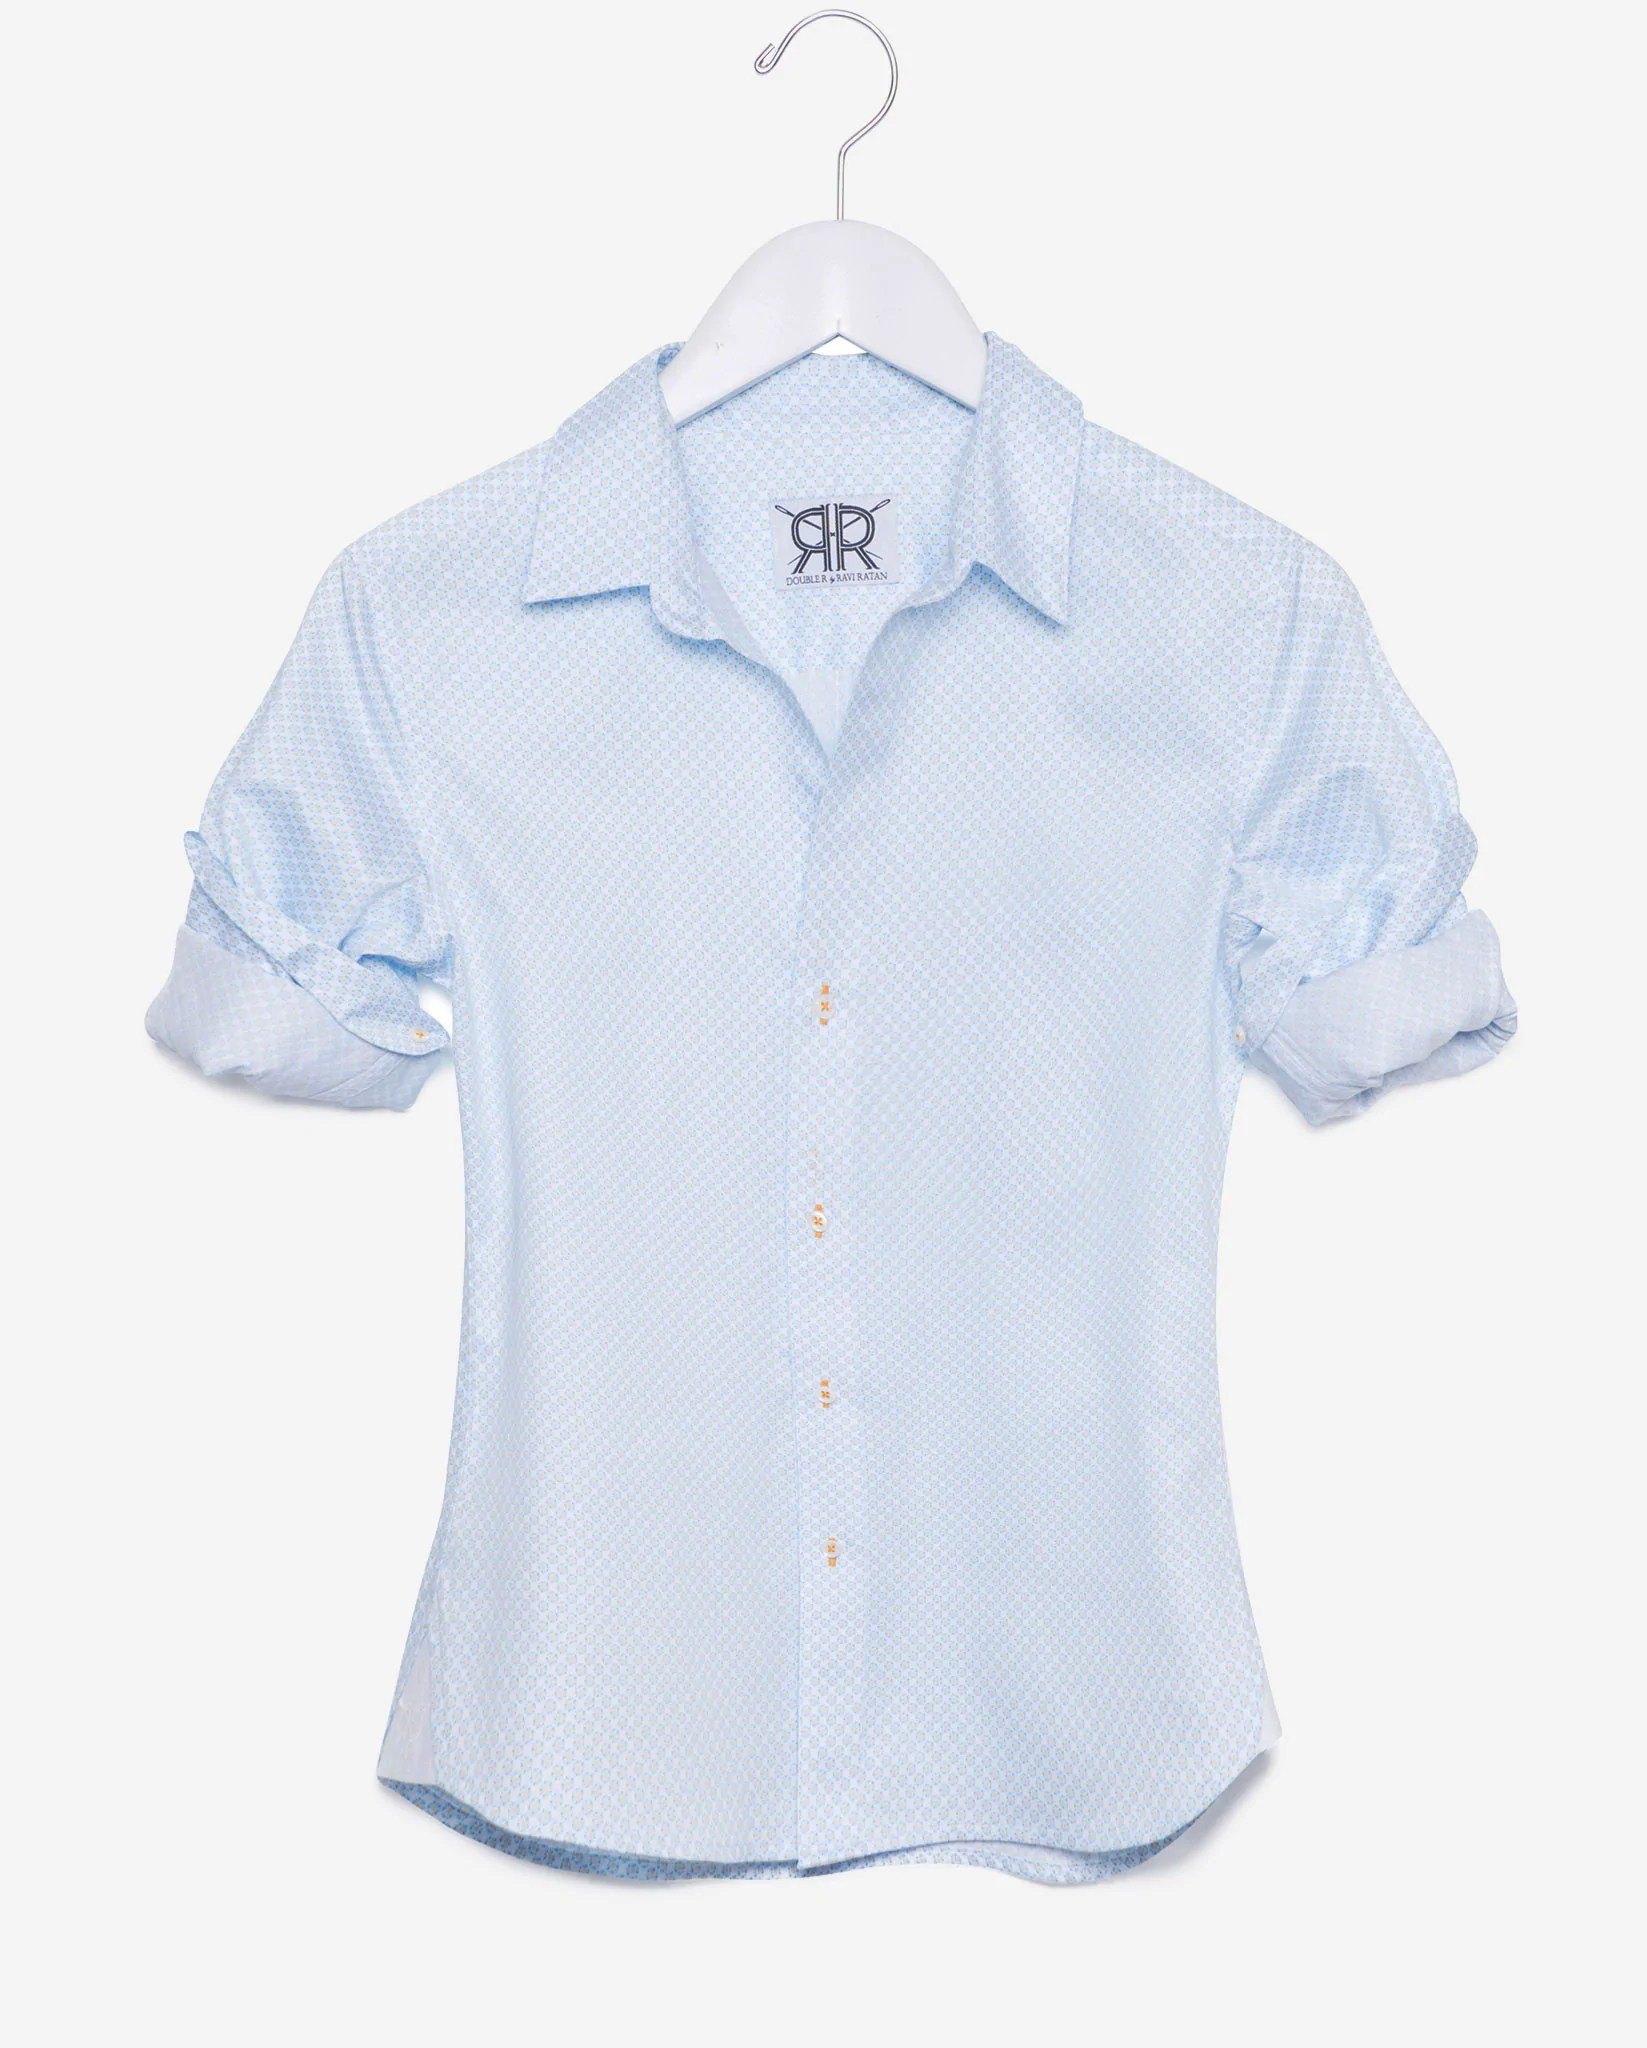 19010f68 Womens Fitted Button Down Dress Shirts - DREAMWORKS